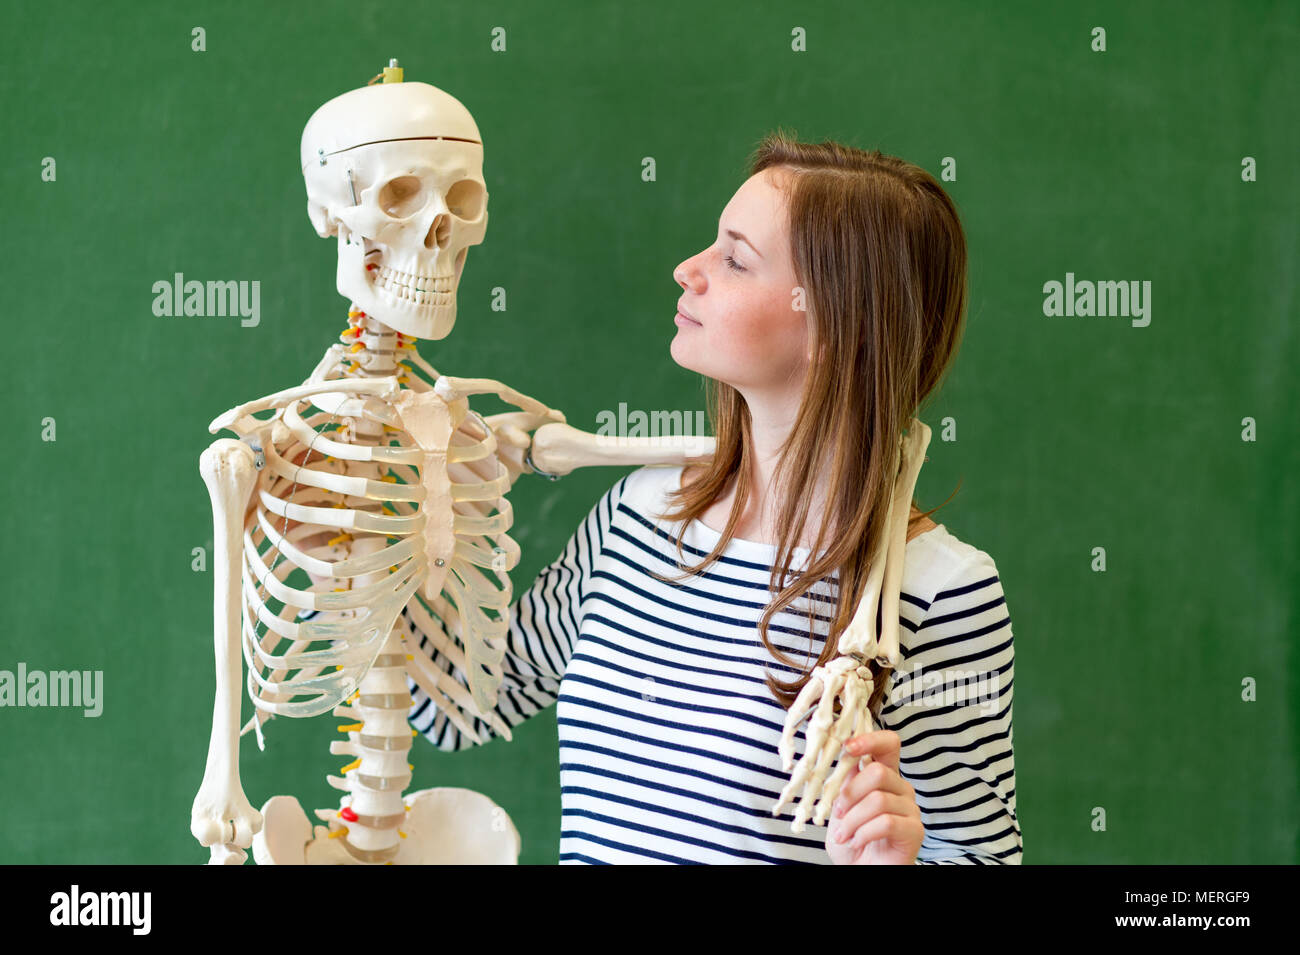 Cool female high school student portrait with an artificial human ...